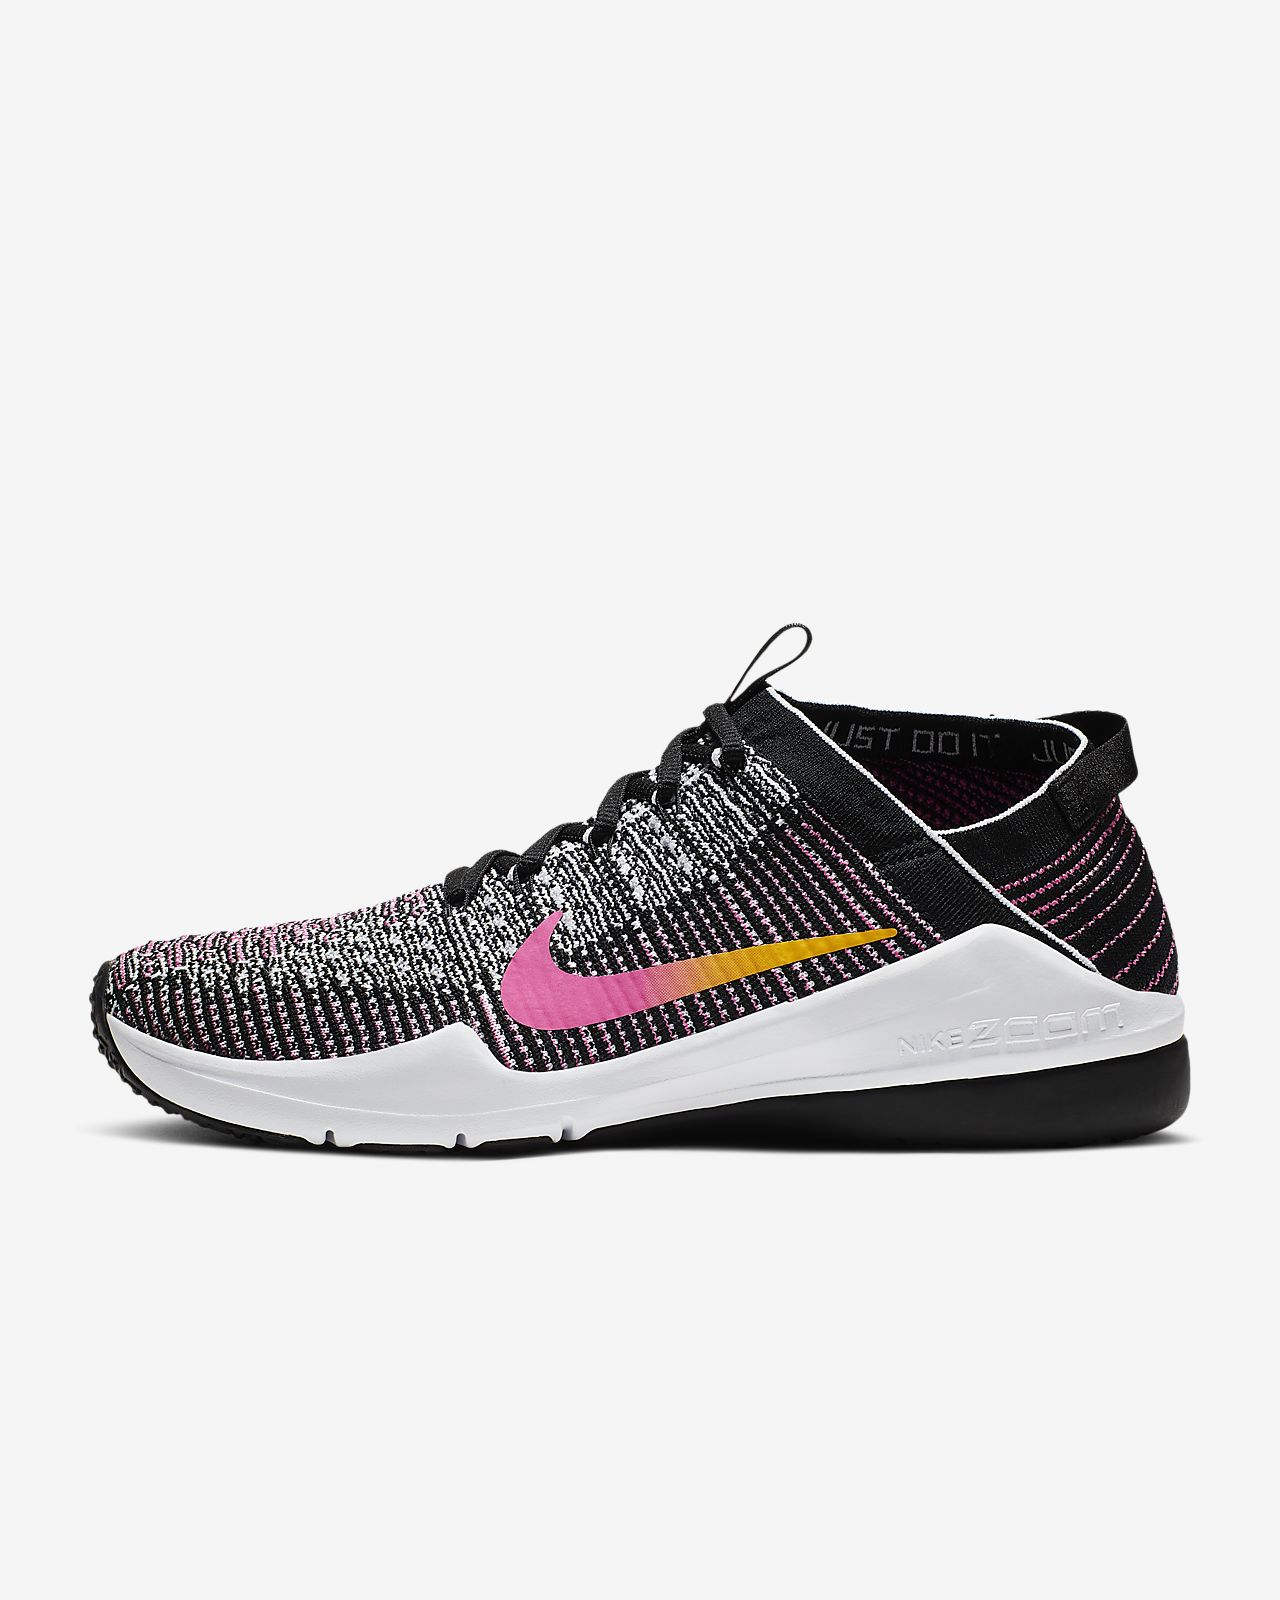 wholesale dealer 82683 c0677 Women s Gym Training Boxing Shoe. Nike Air Zoom Fearless Flyknit 2